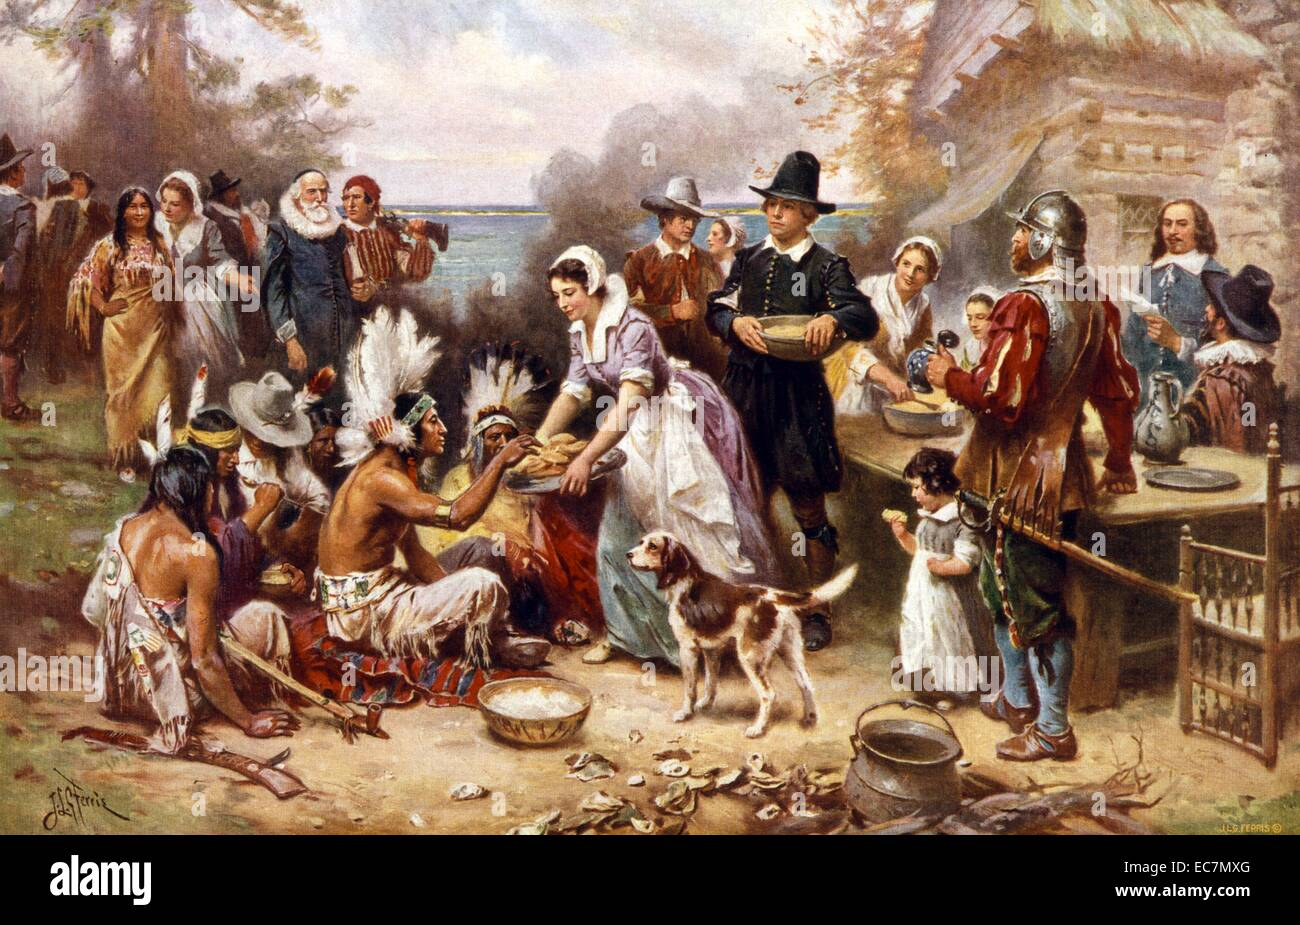 The first Thanksgiving 1621. Pilgrims and Natives gather to share meal. - Stock Image